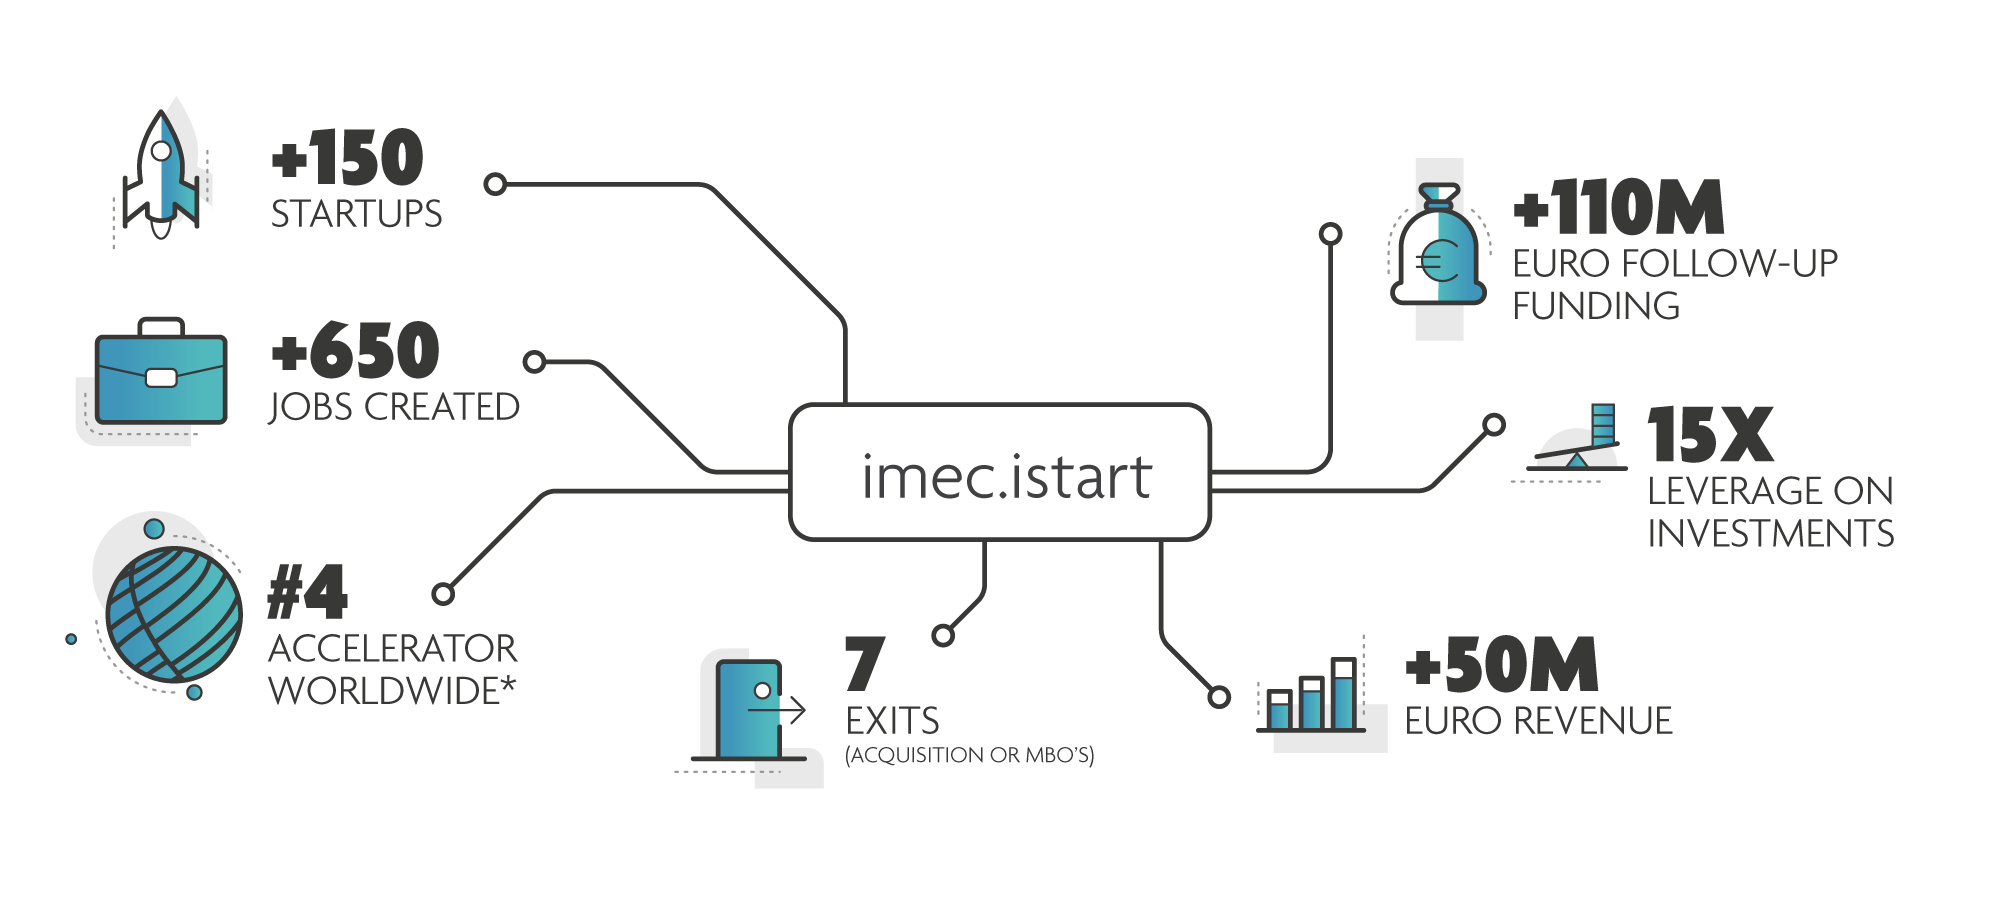 imec.istart - Facts & Figures